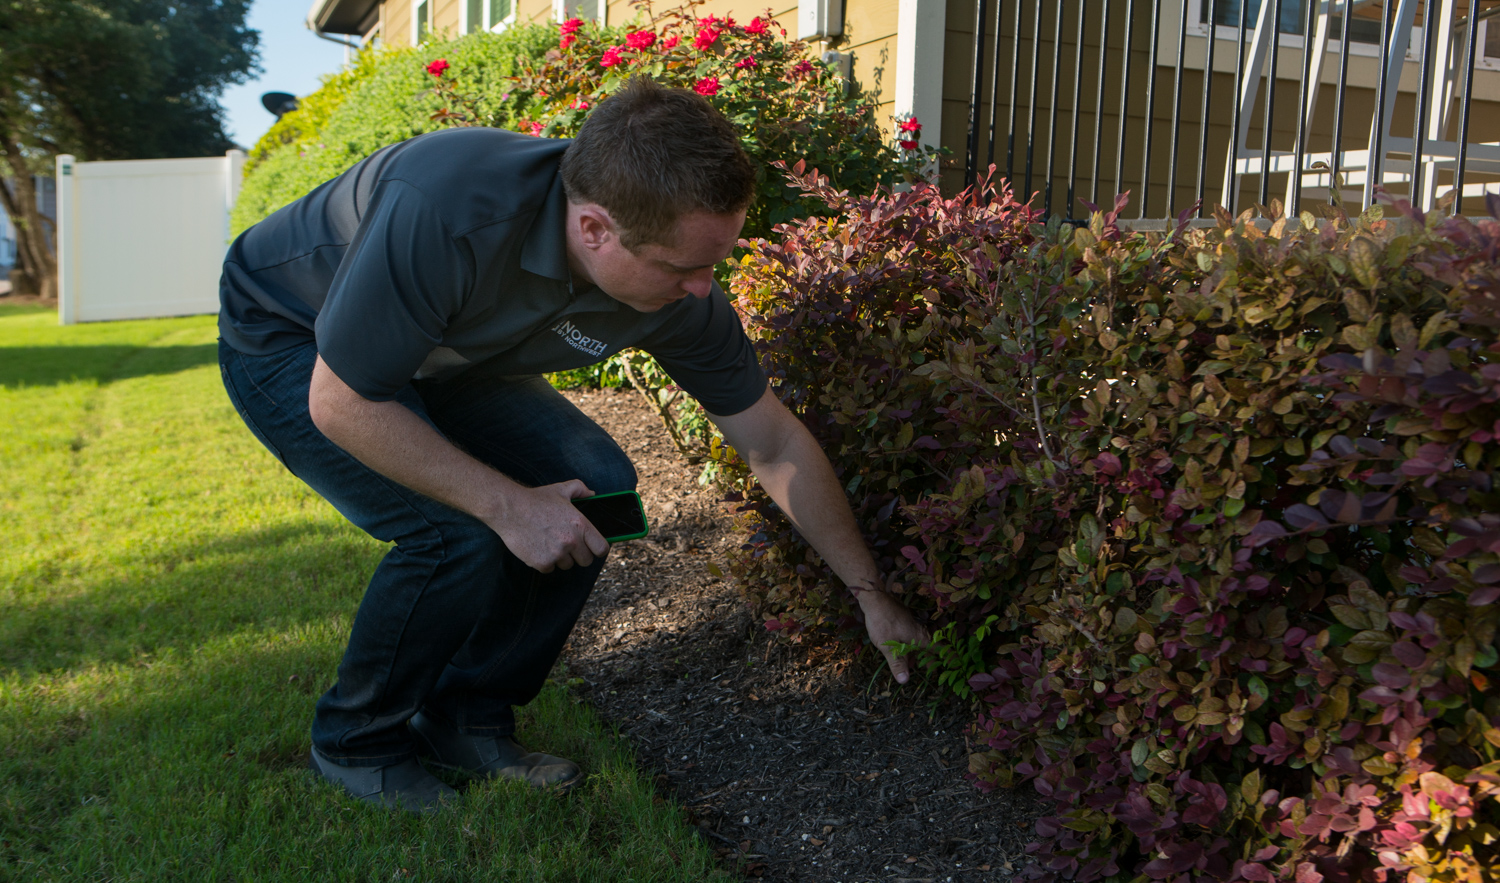 commercial landscape technician caring for shrubs